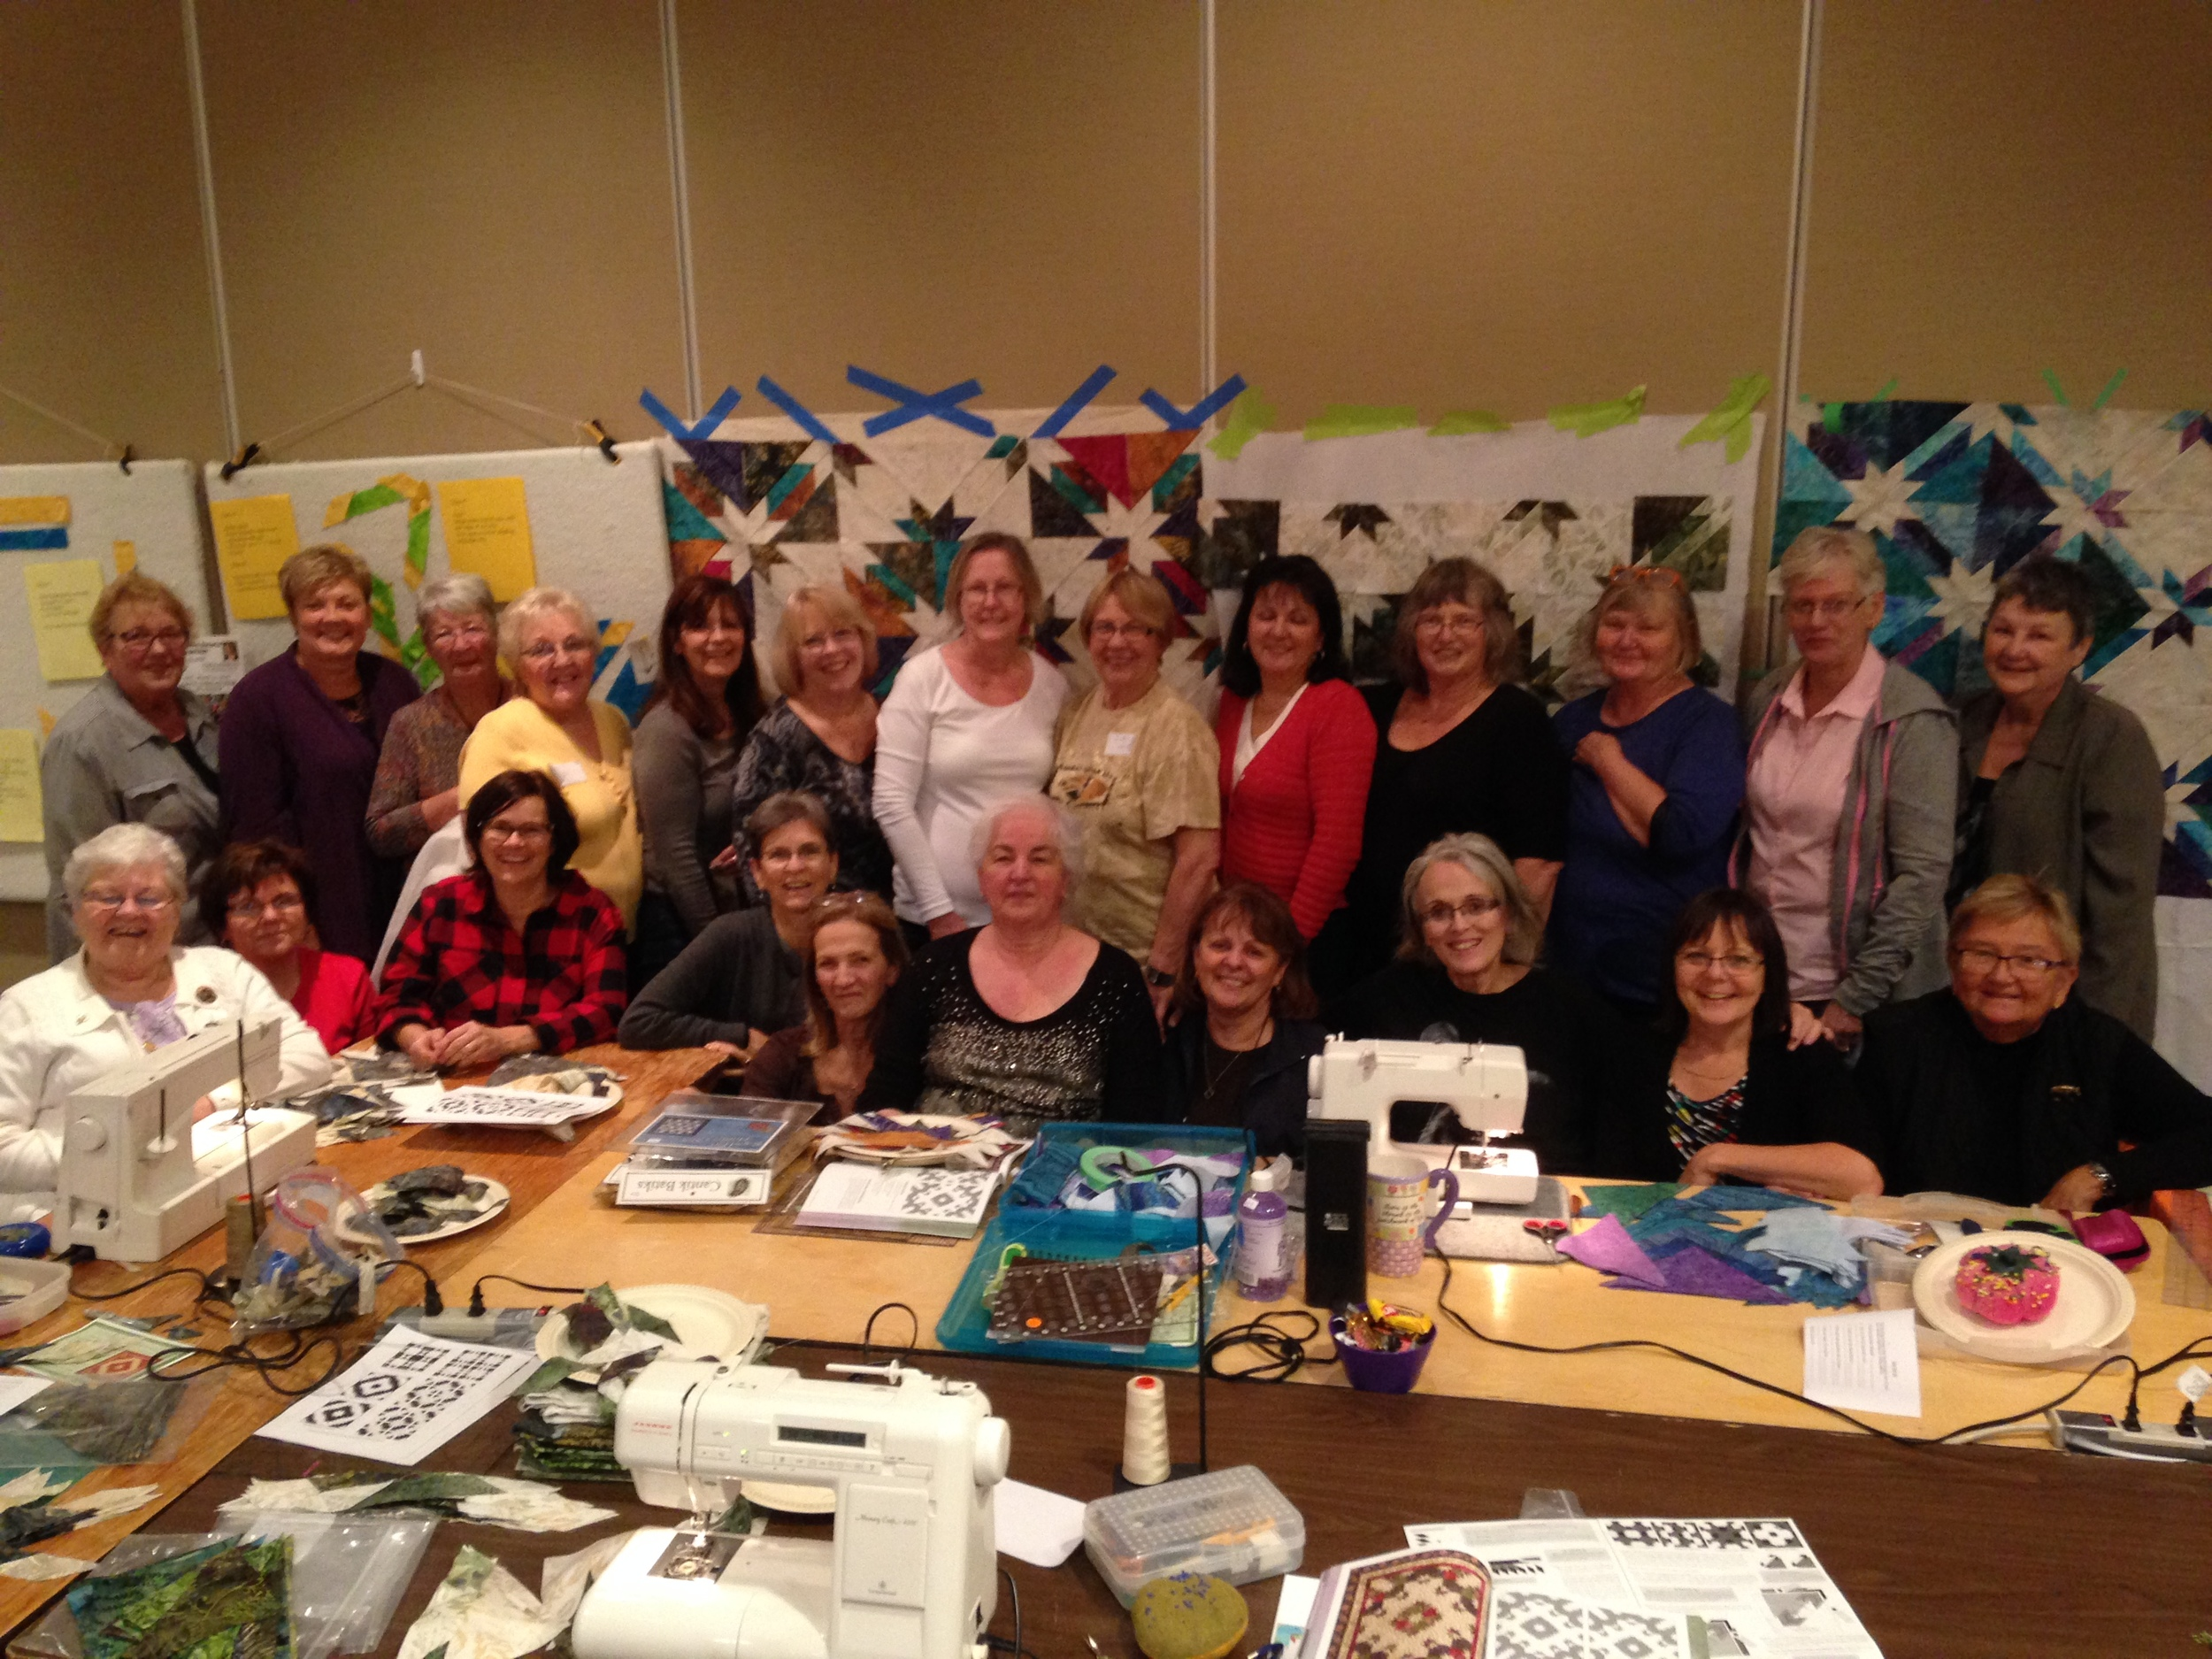 Thank you everyone for spending some special quilting time with me. Can't wait to do it again.